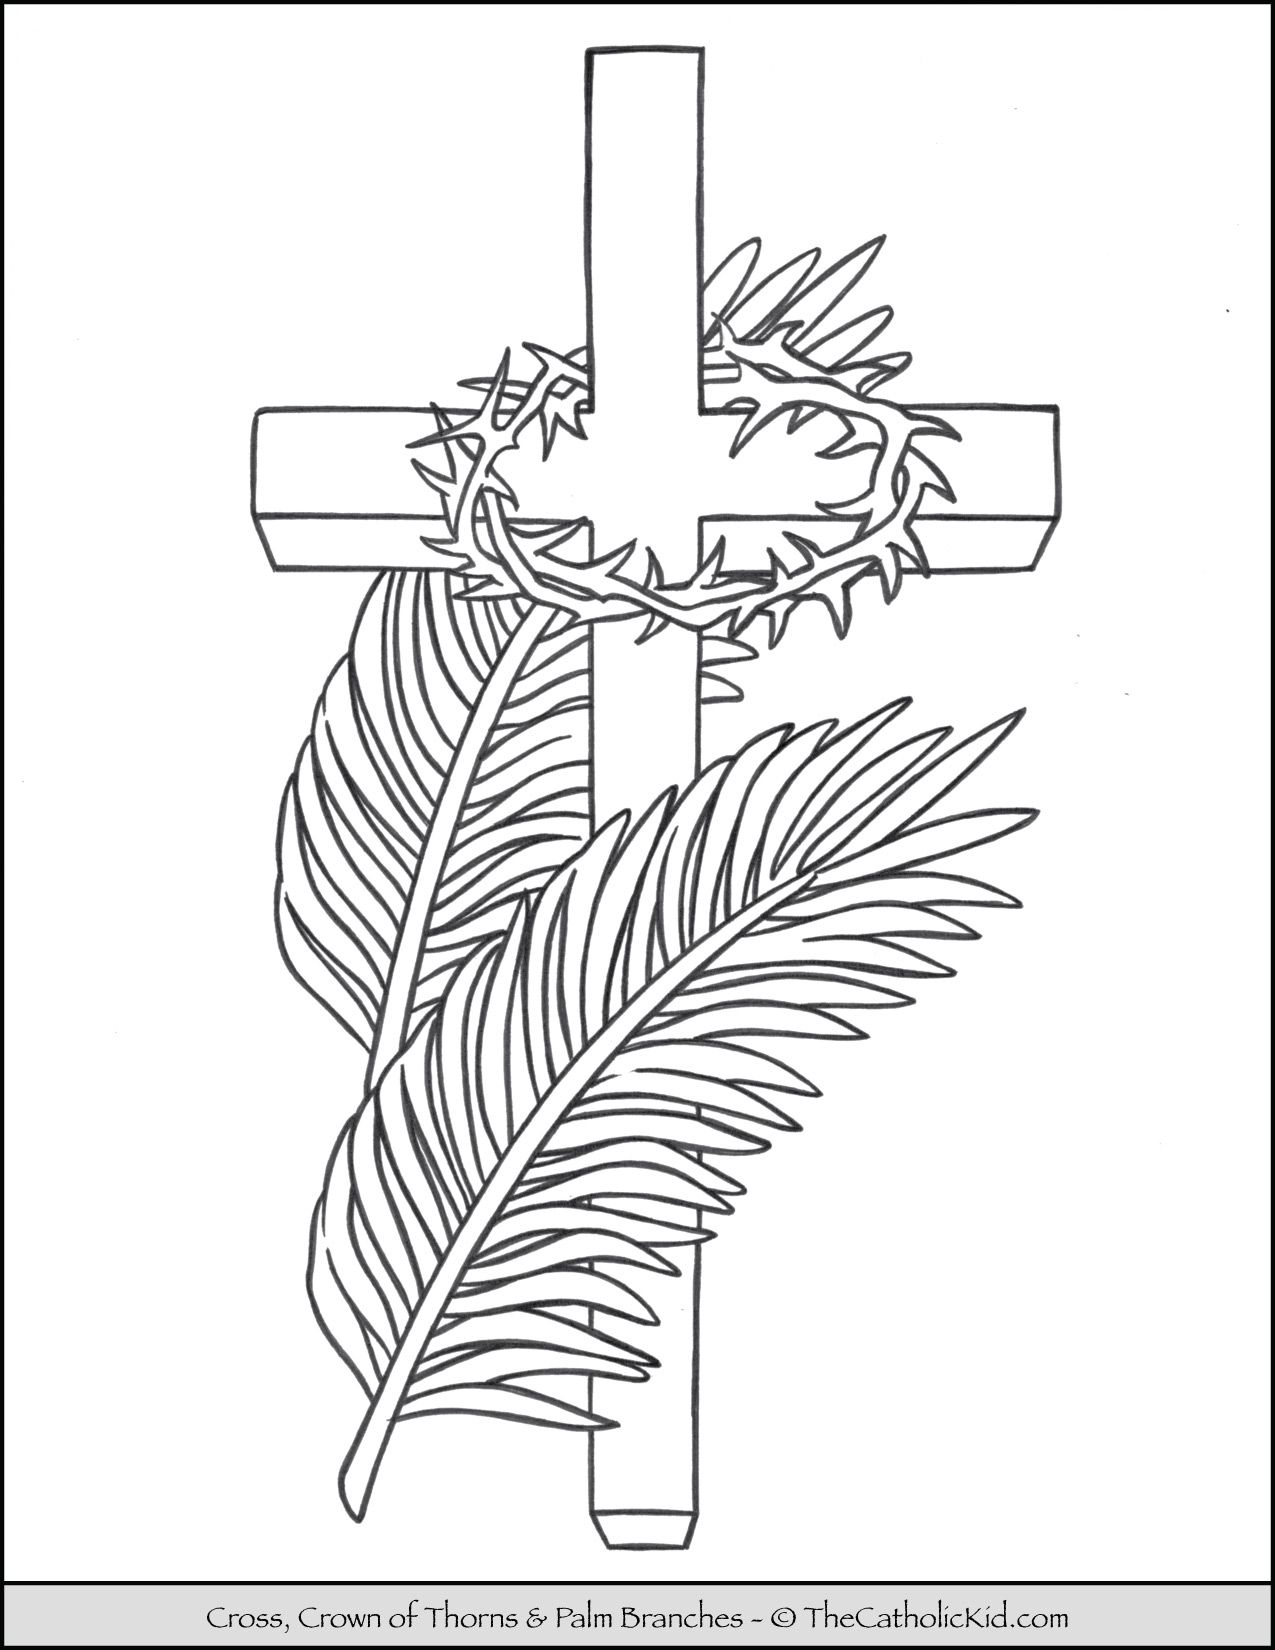 Lent Coloring Page Cross Palms Crown Of Thorns Thecatholickid Com Catholic Coloring Cross Coloring Page Jesus Coloring Pages